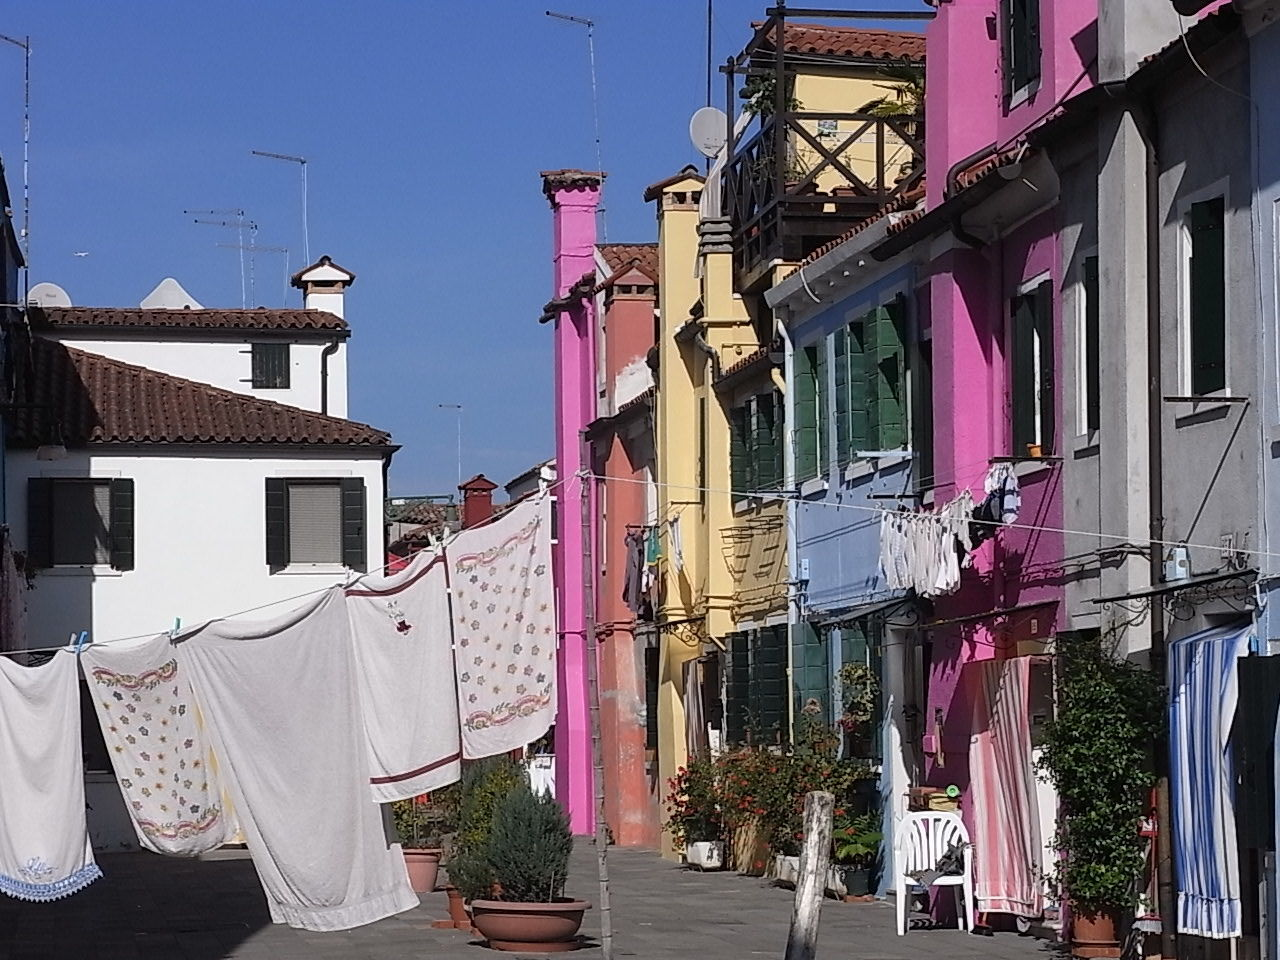 My Year My View Burano Italy Close To Venice . Perfect Place For Pastel Colors And Blue Sky . Dolce Vita Colourful Colourful Houses Old Houses Burano, Venice Outdoors No People Colorful Color Palette Clothes Hanging Village Blue Sky Houses Channel Travel Travel Destinations Travelphotography EyeEm Best Shots